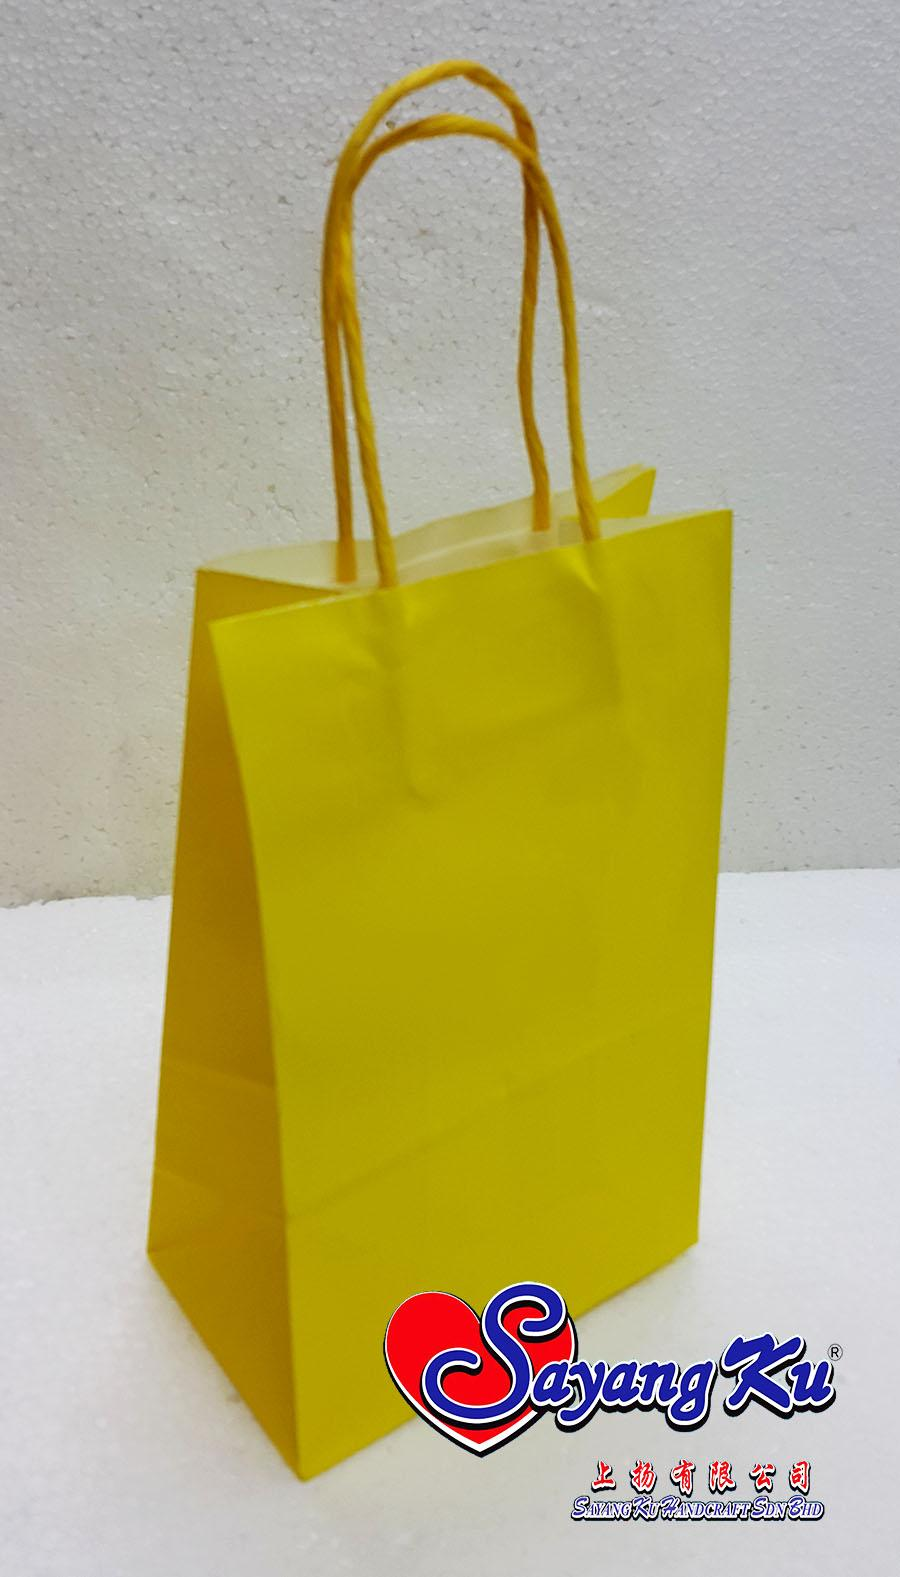 Paper bag yellow - Paper Bag Yellow 39